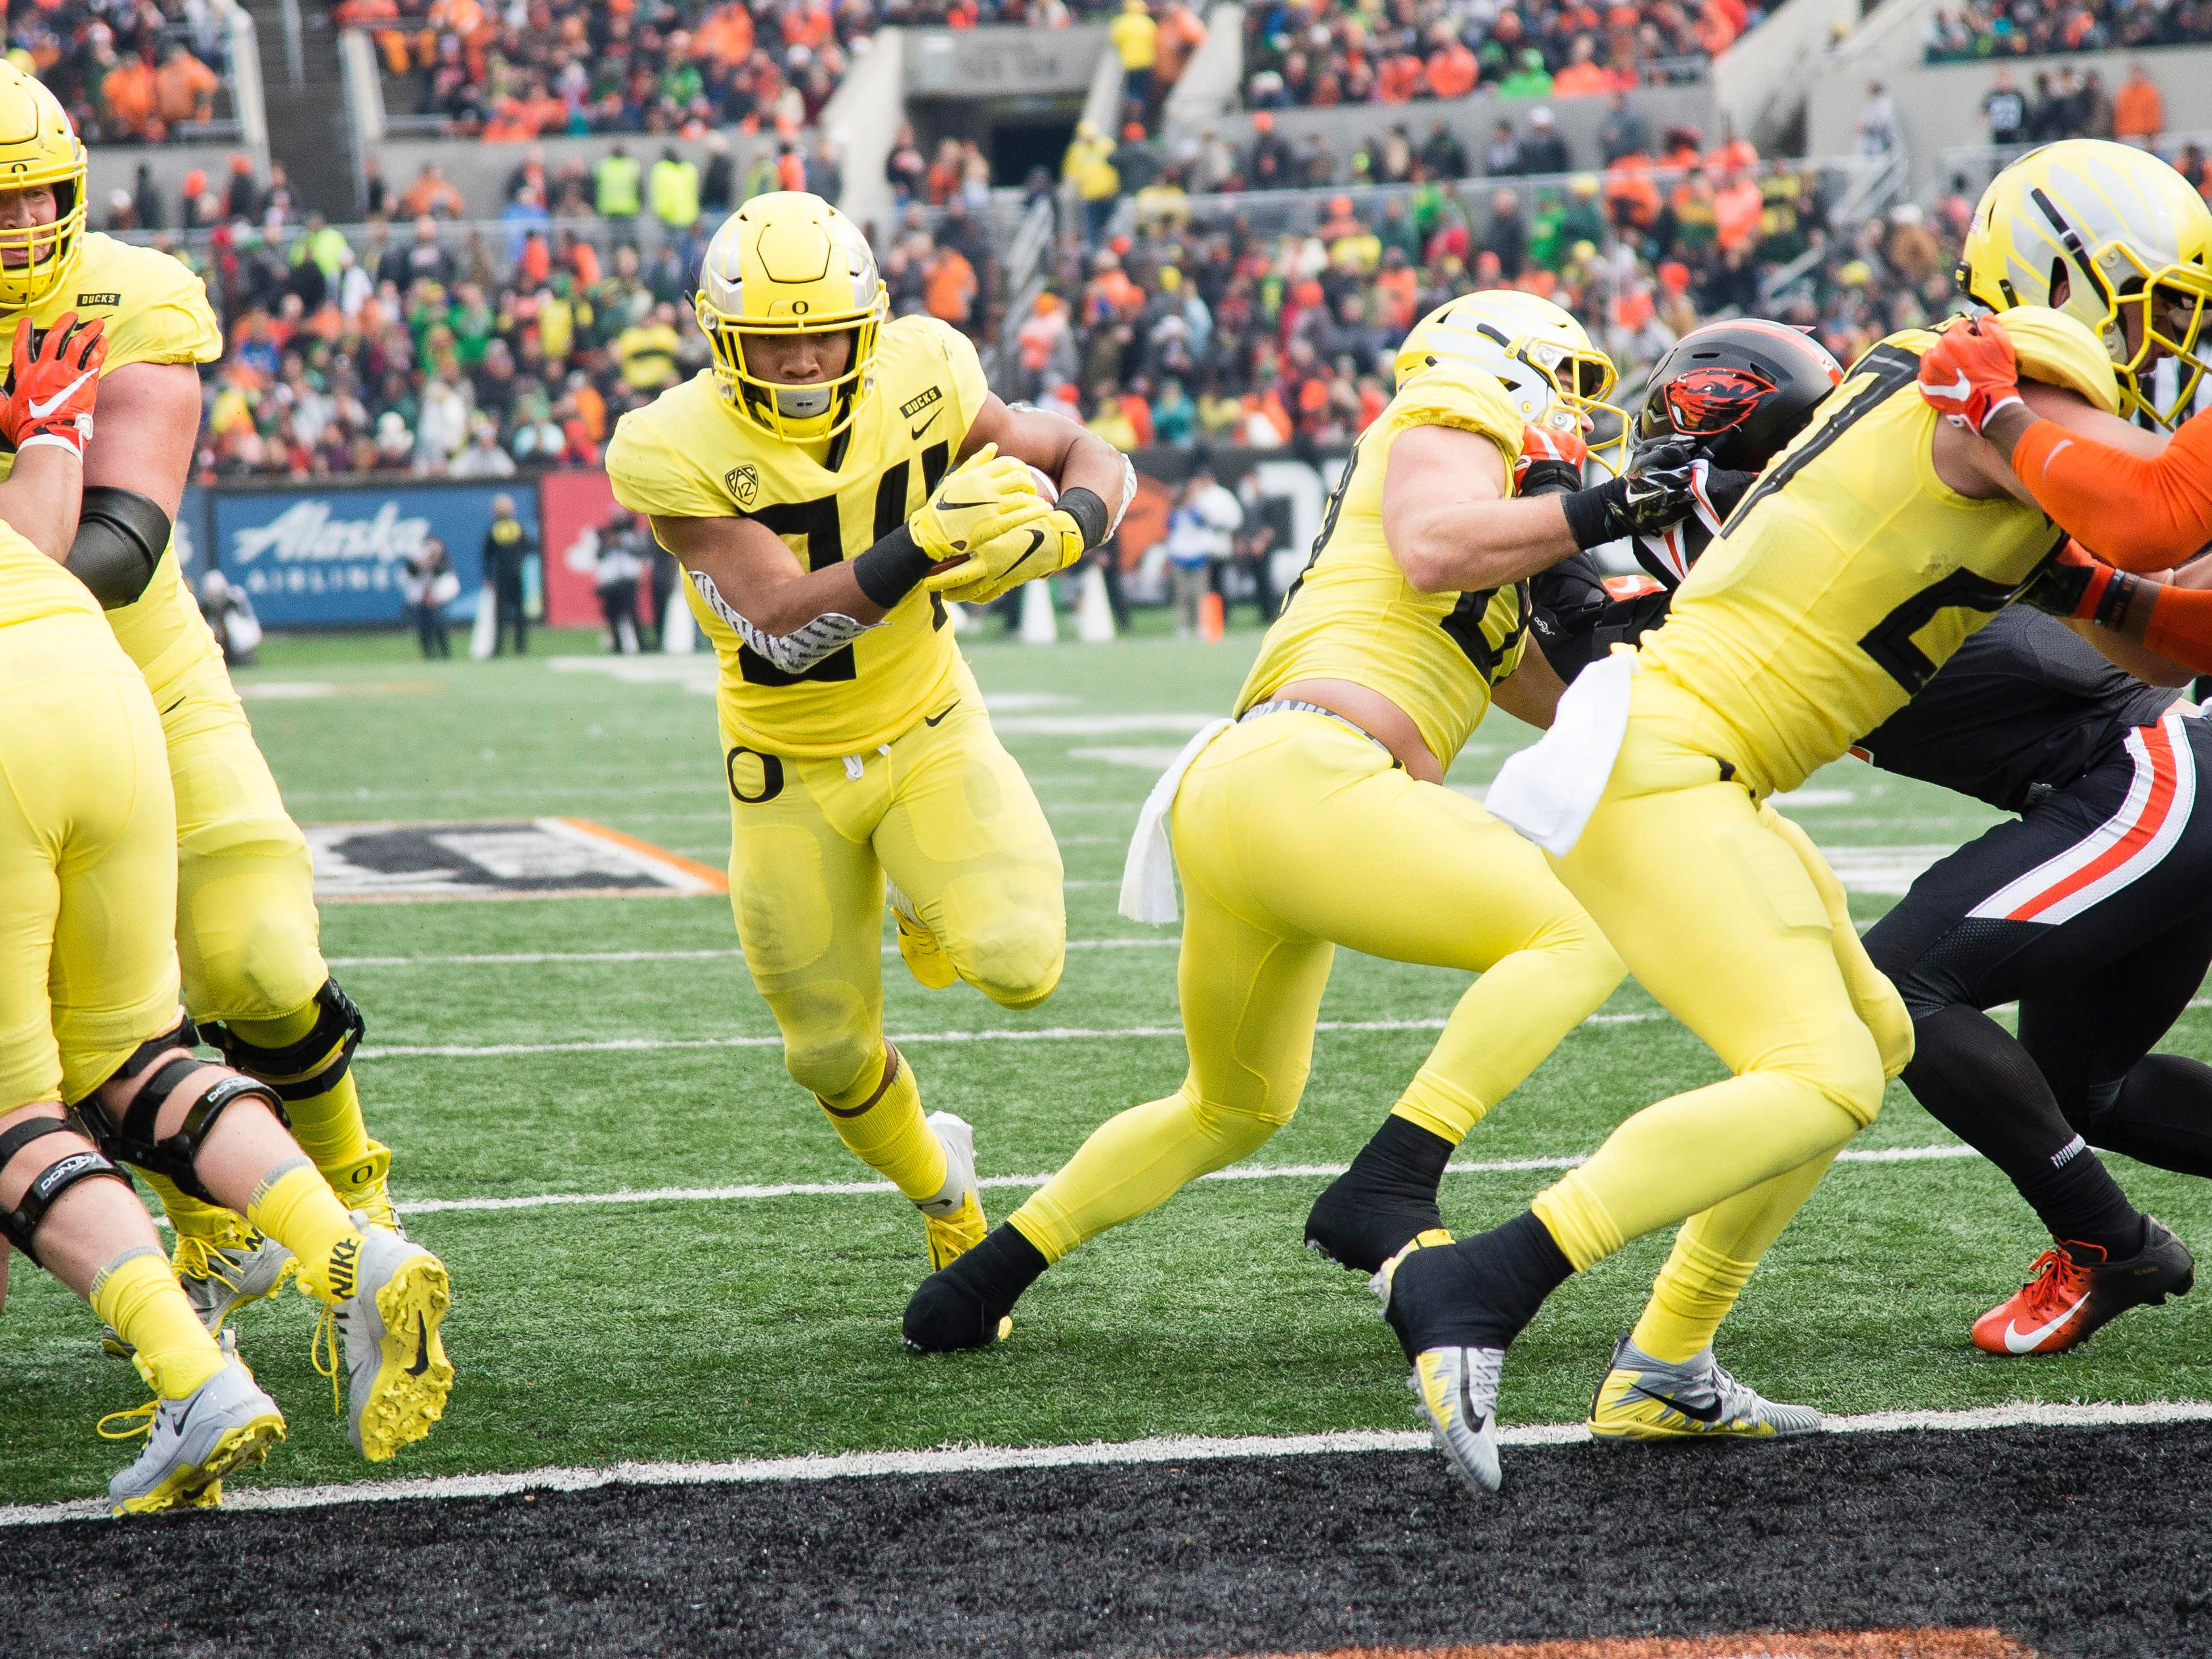 Oregon running back CJ Verdell runs into the end zone for a touchdown during the first half against Oregon State.